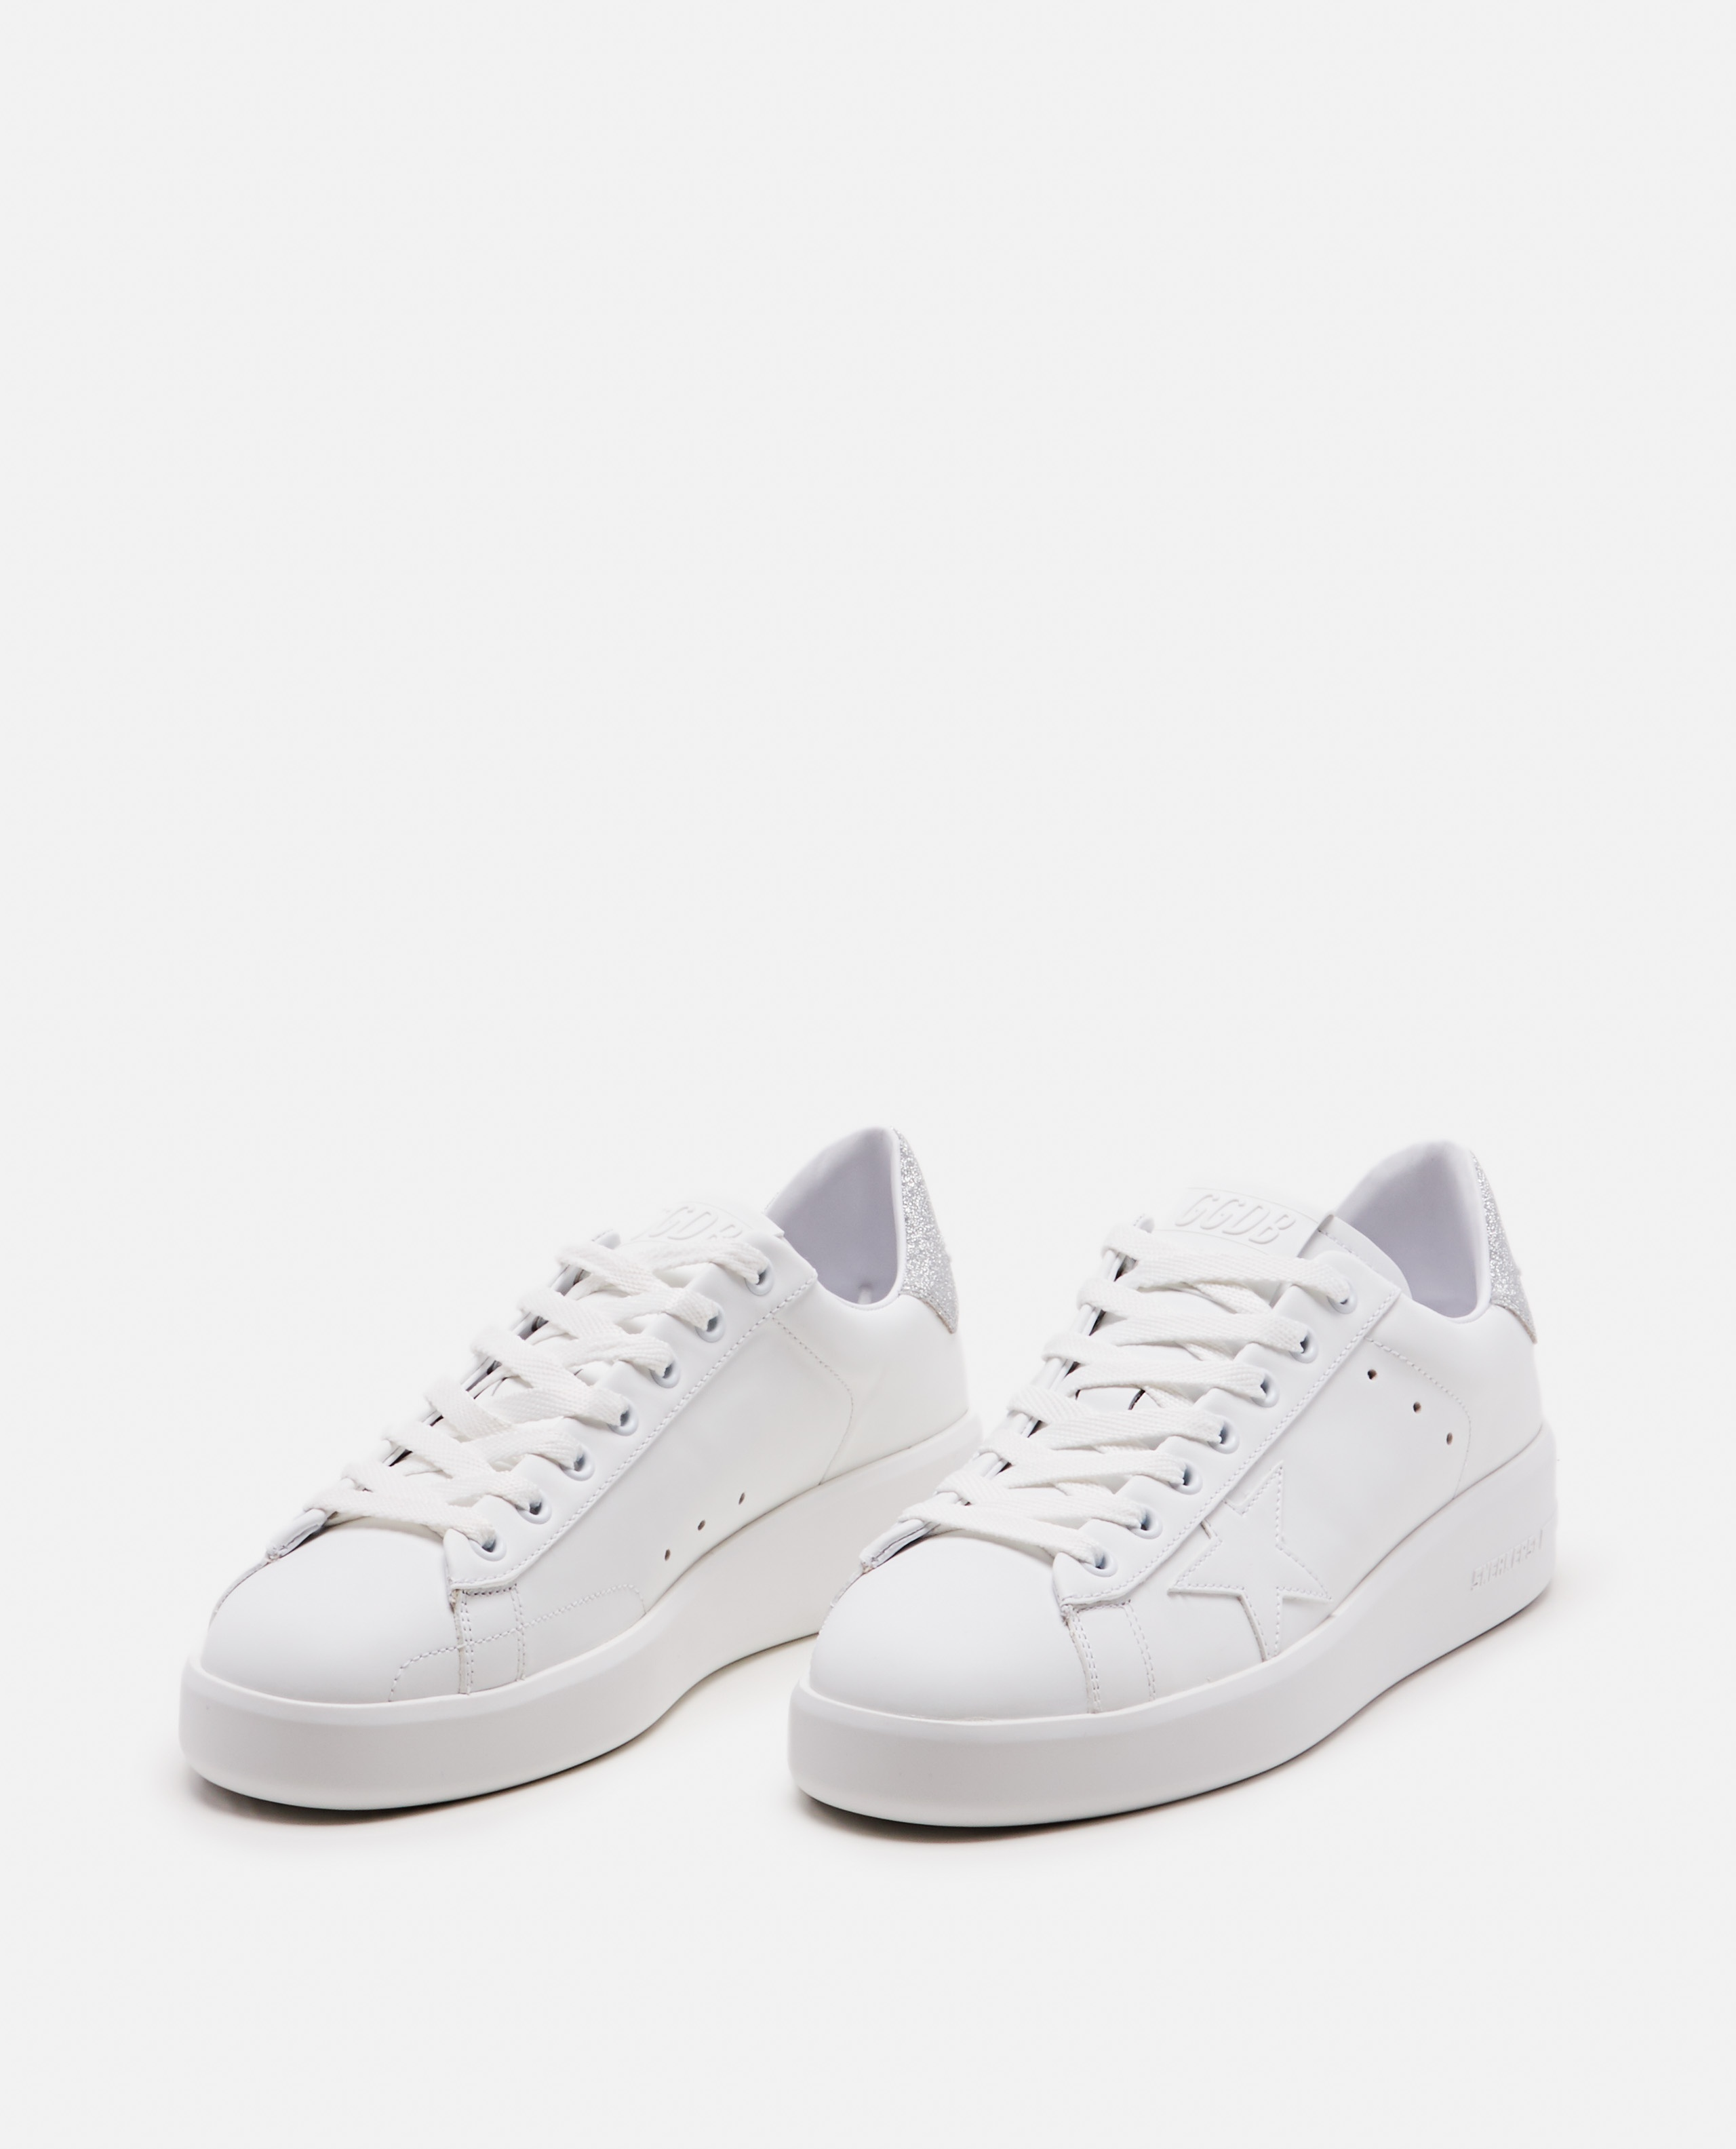 White leather sneakers  Women Golden Goose 000215590031979 2